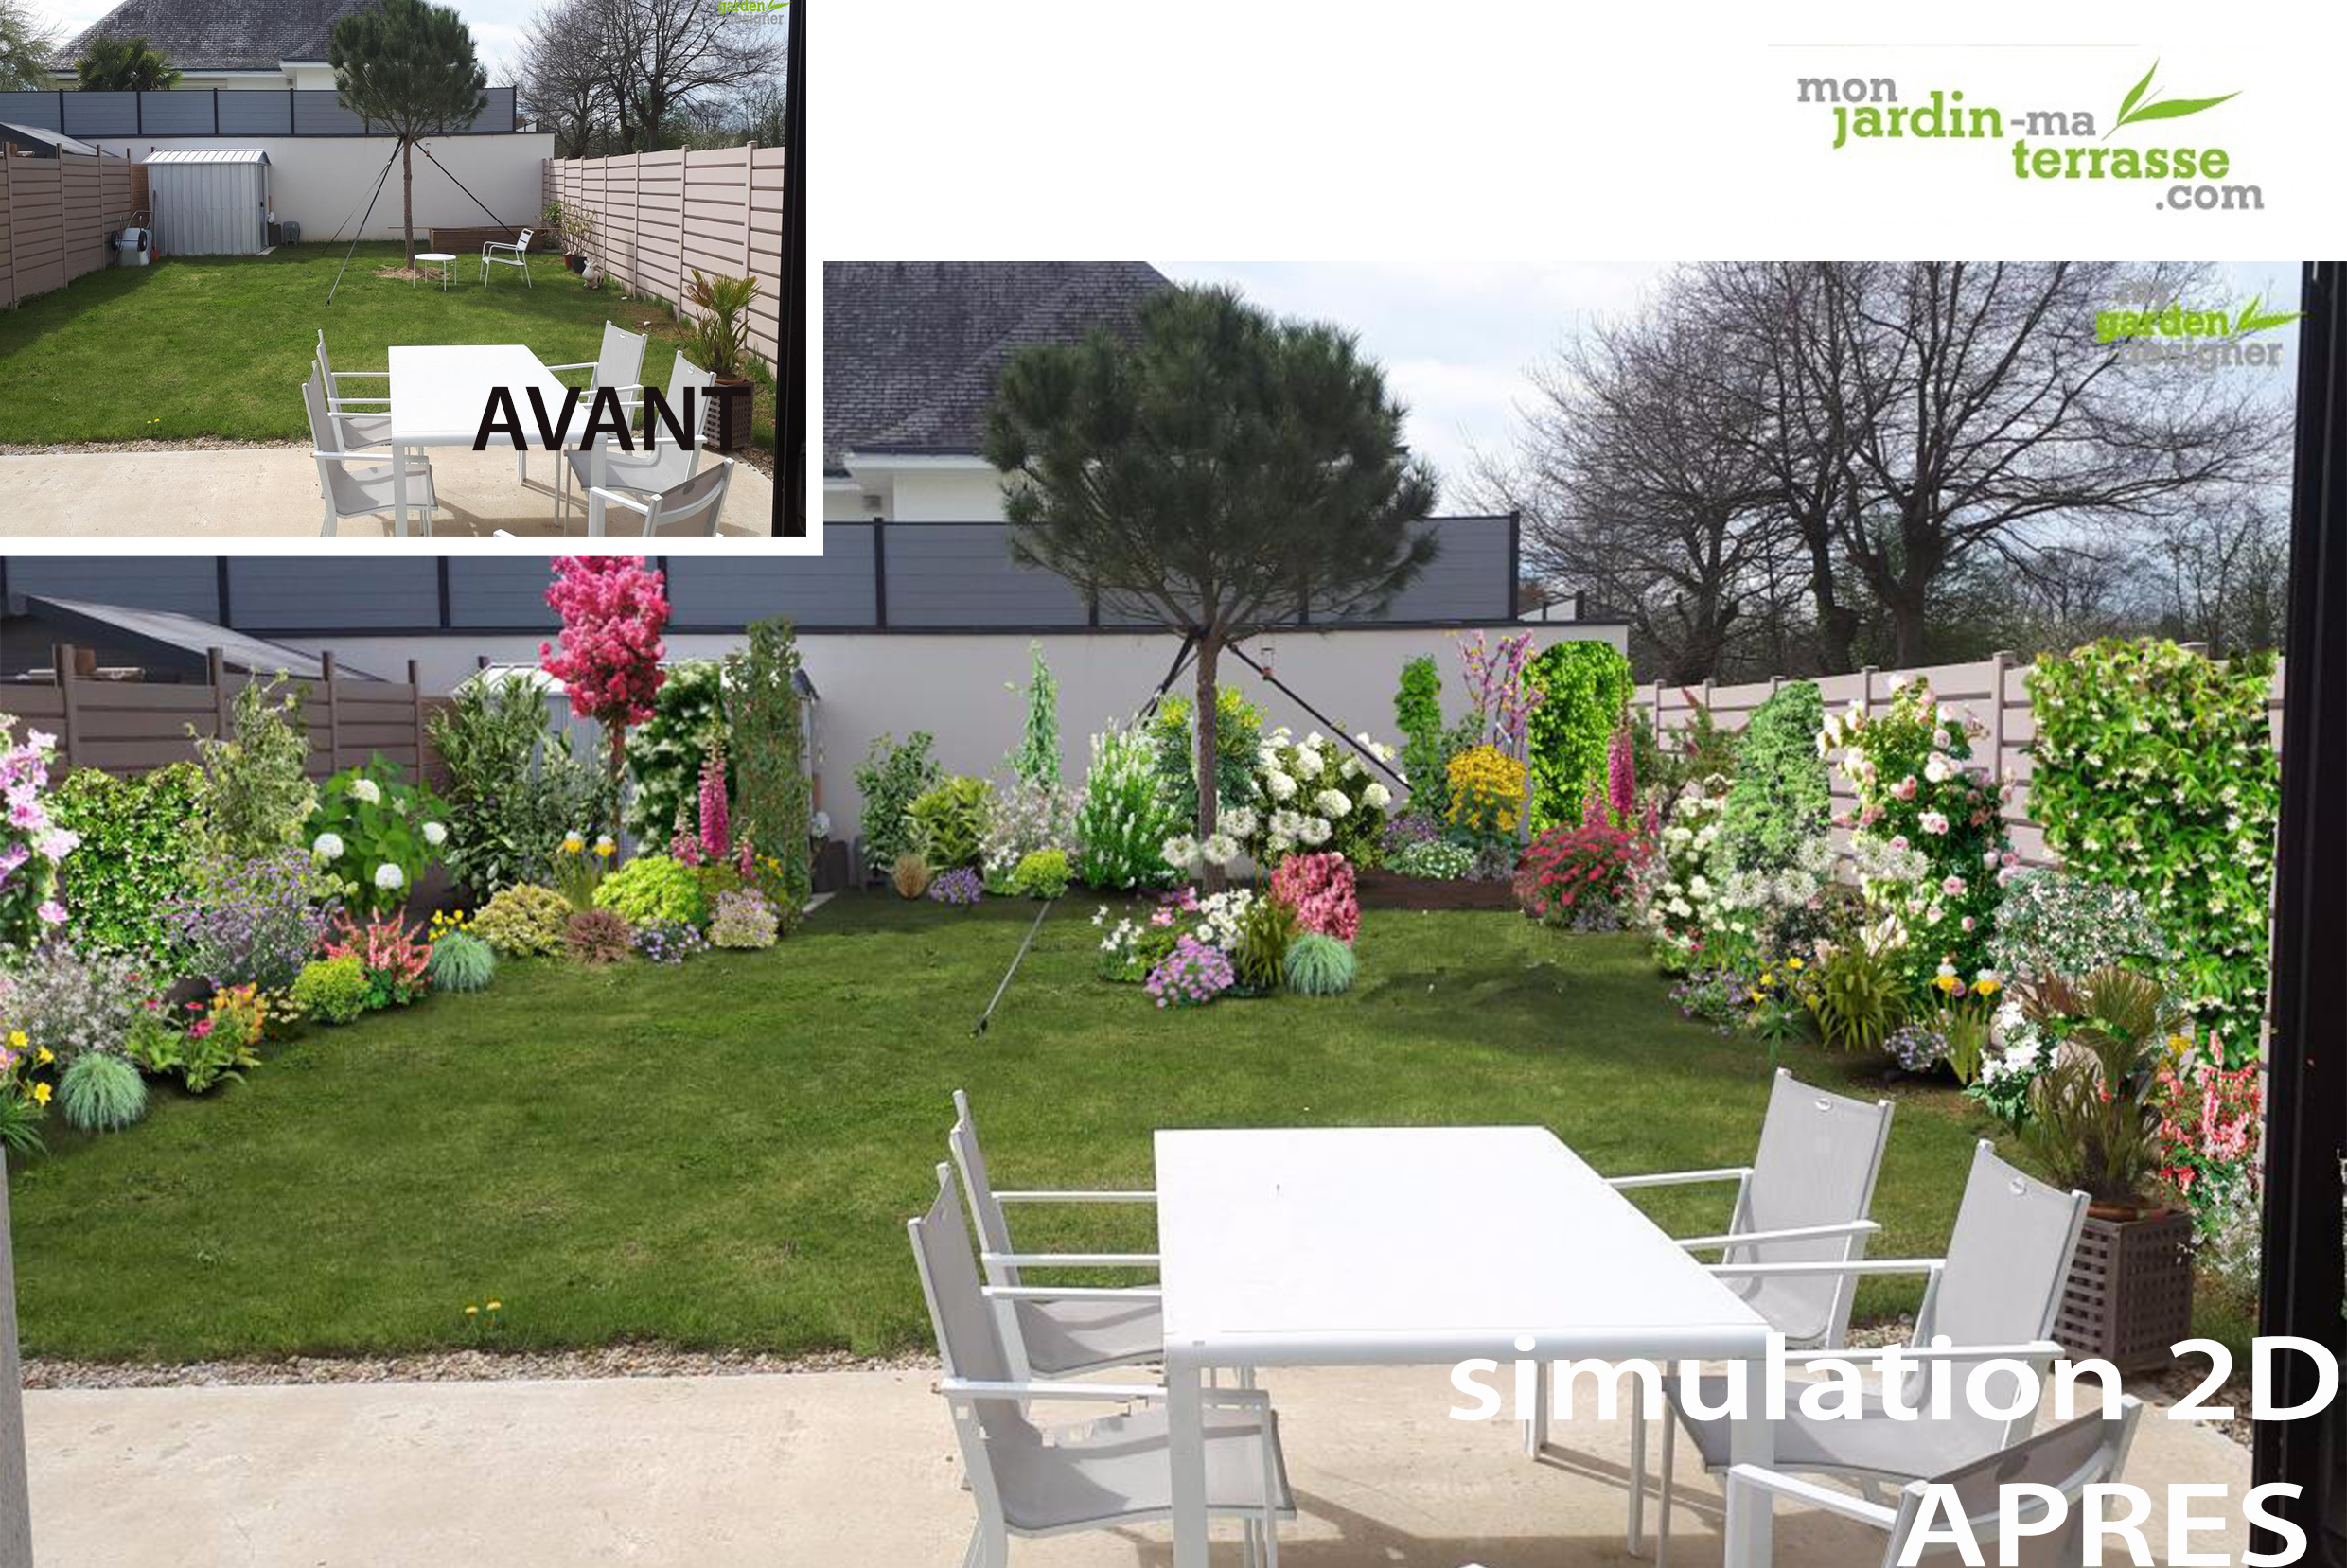 Comment am nager un petit jardin rectangulaire monjardin for Jardin idee amenagement